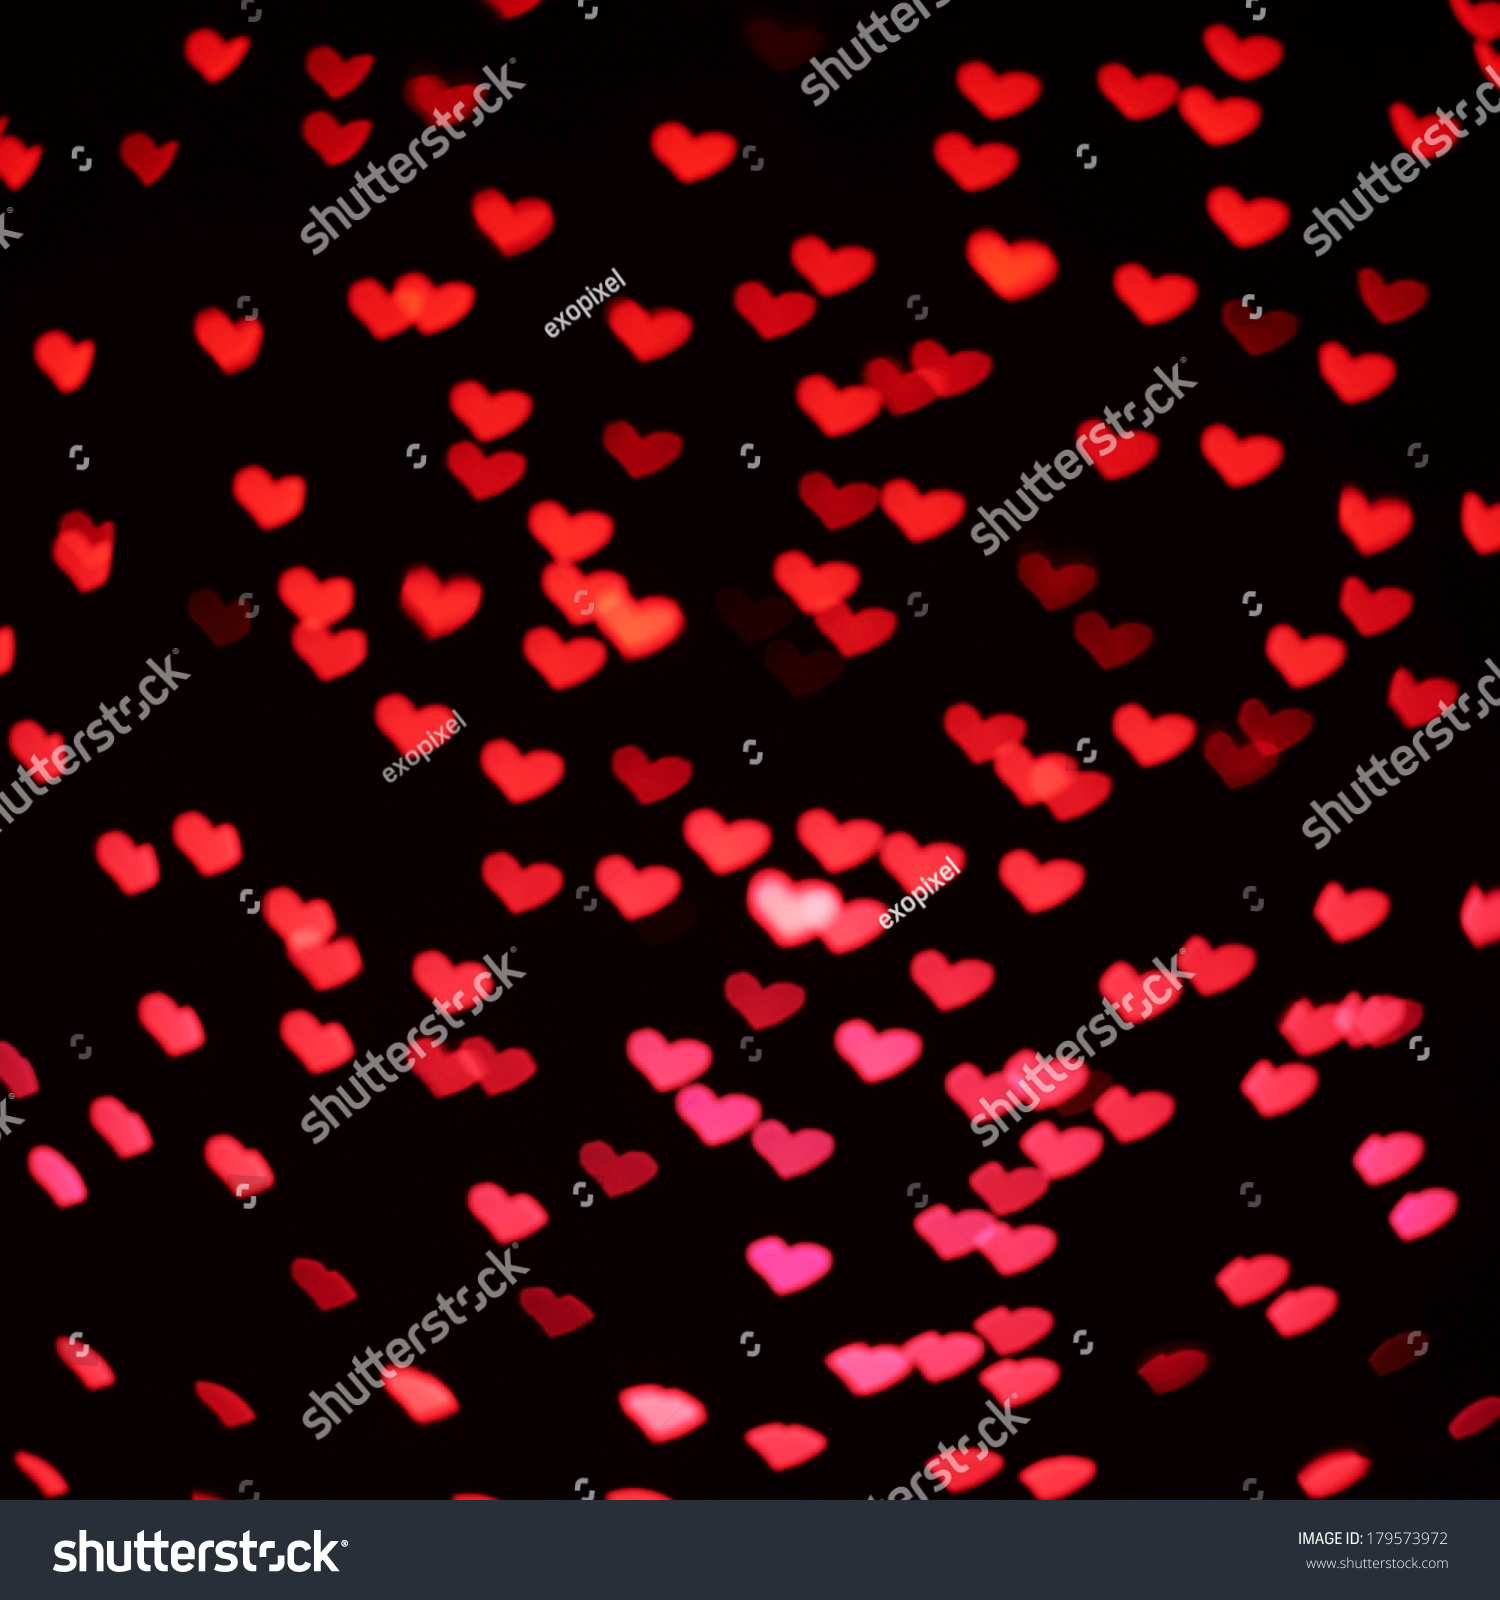 Black and red hearts background